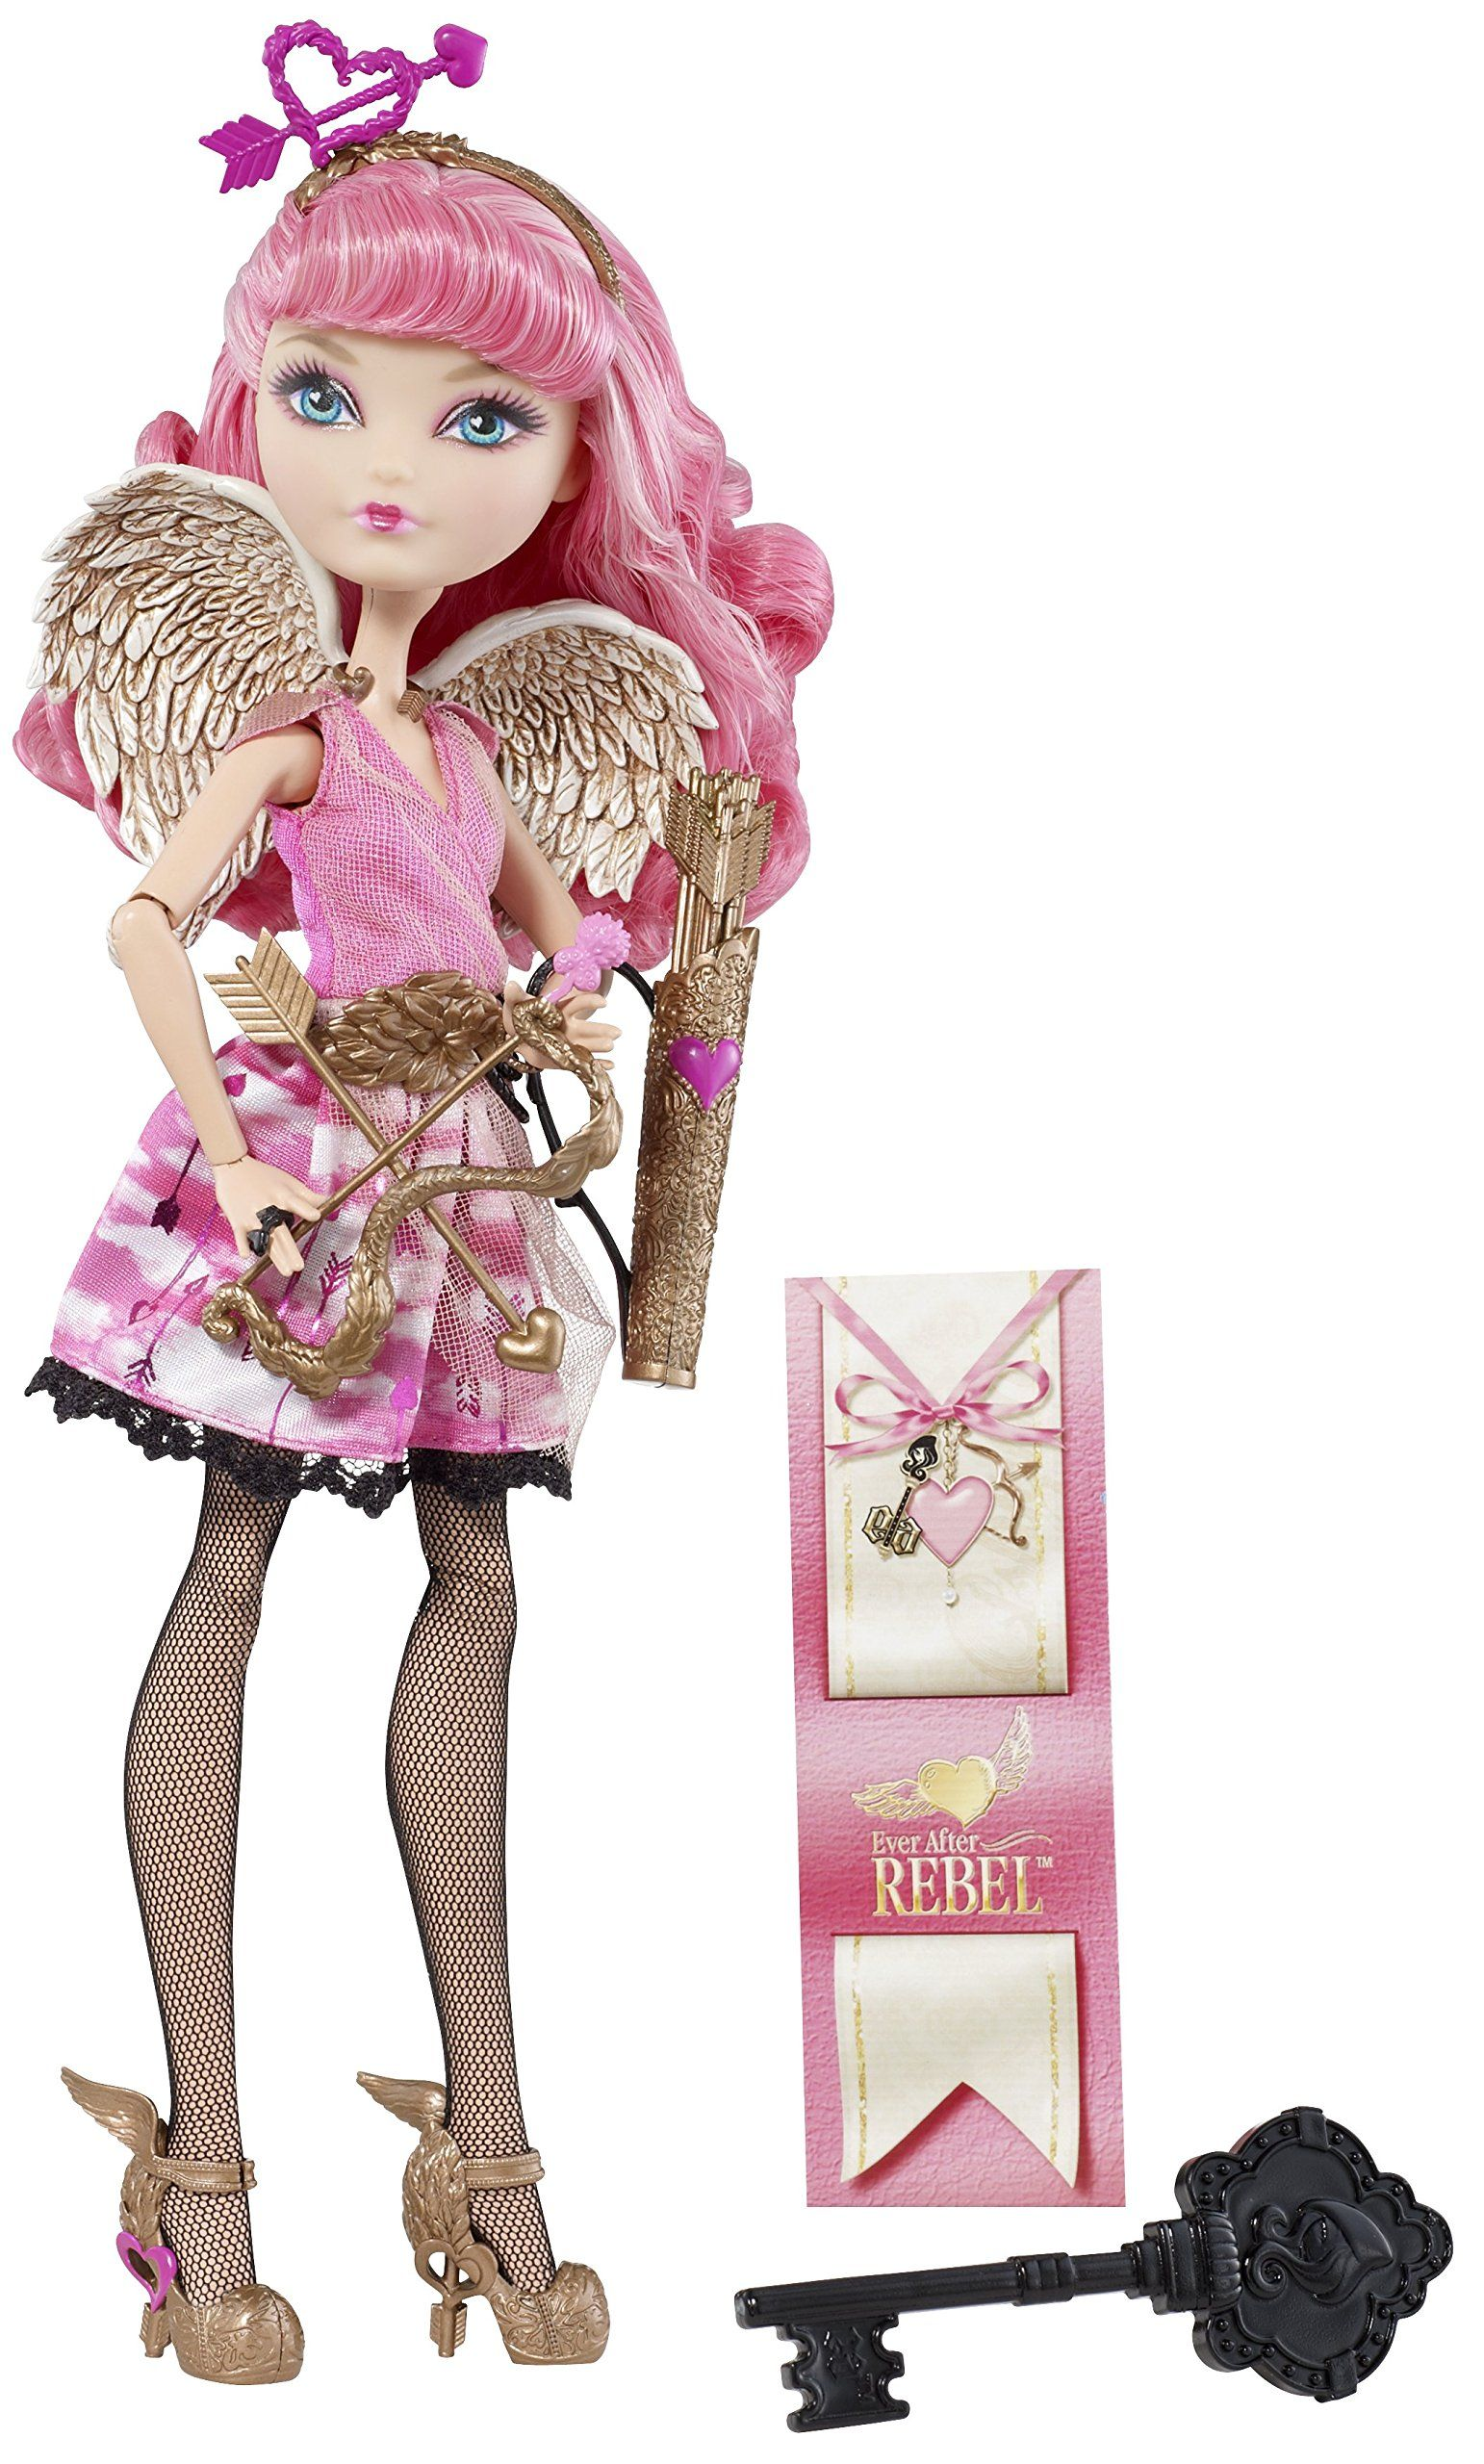 Ever After High C.A. Cupid Doll Toys & Games